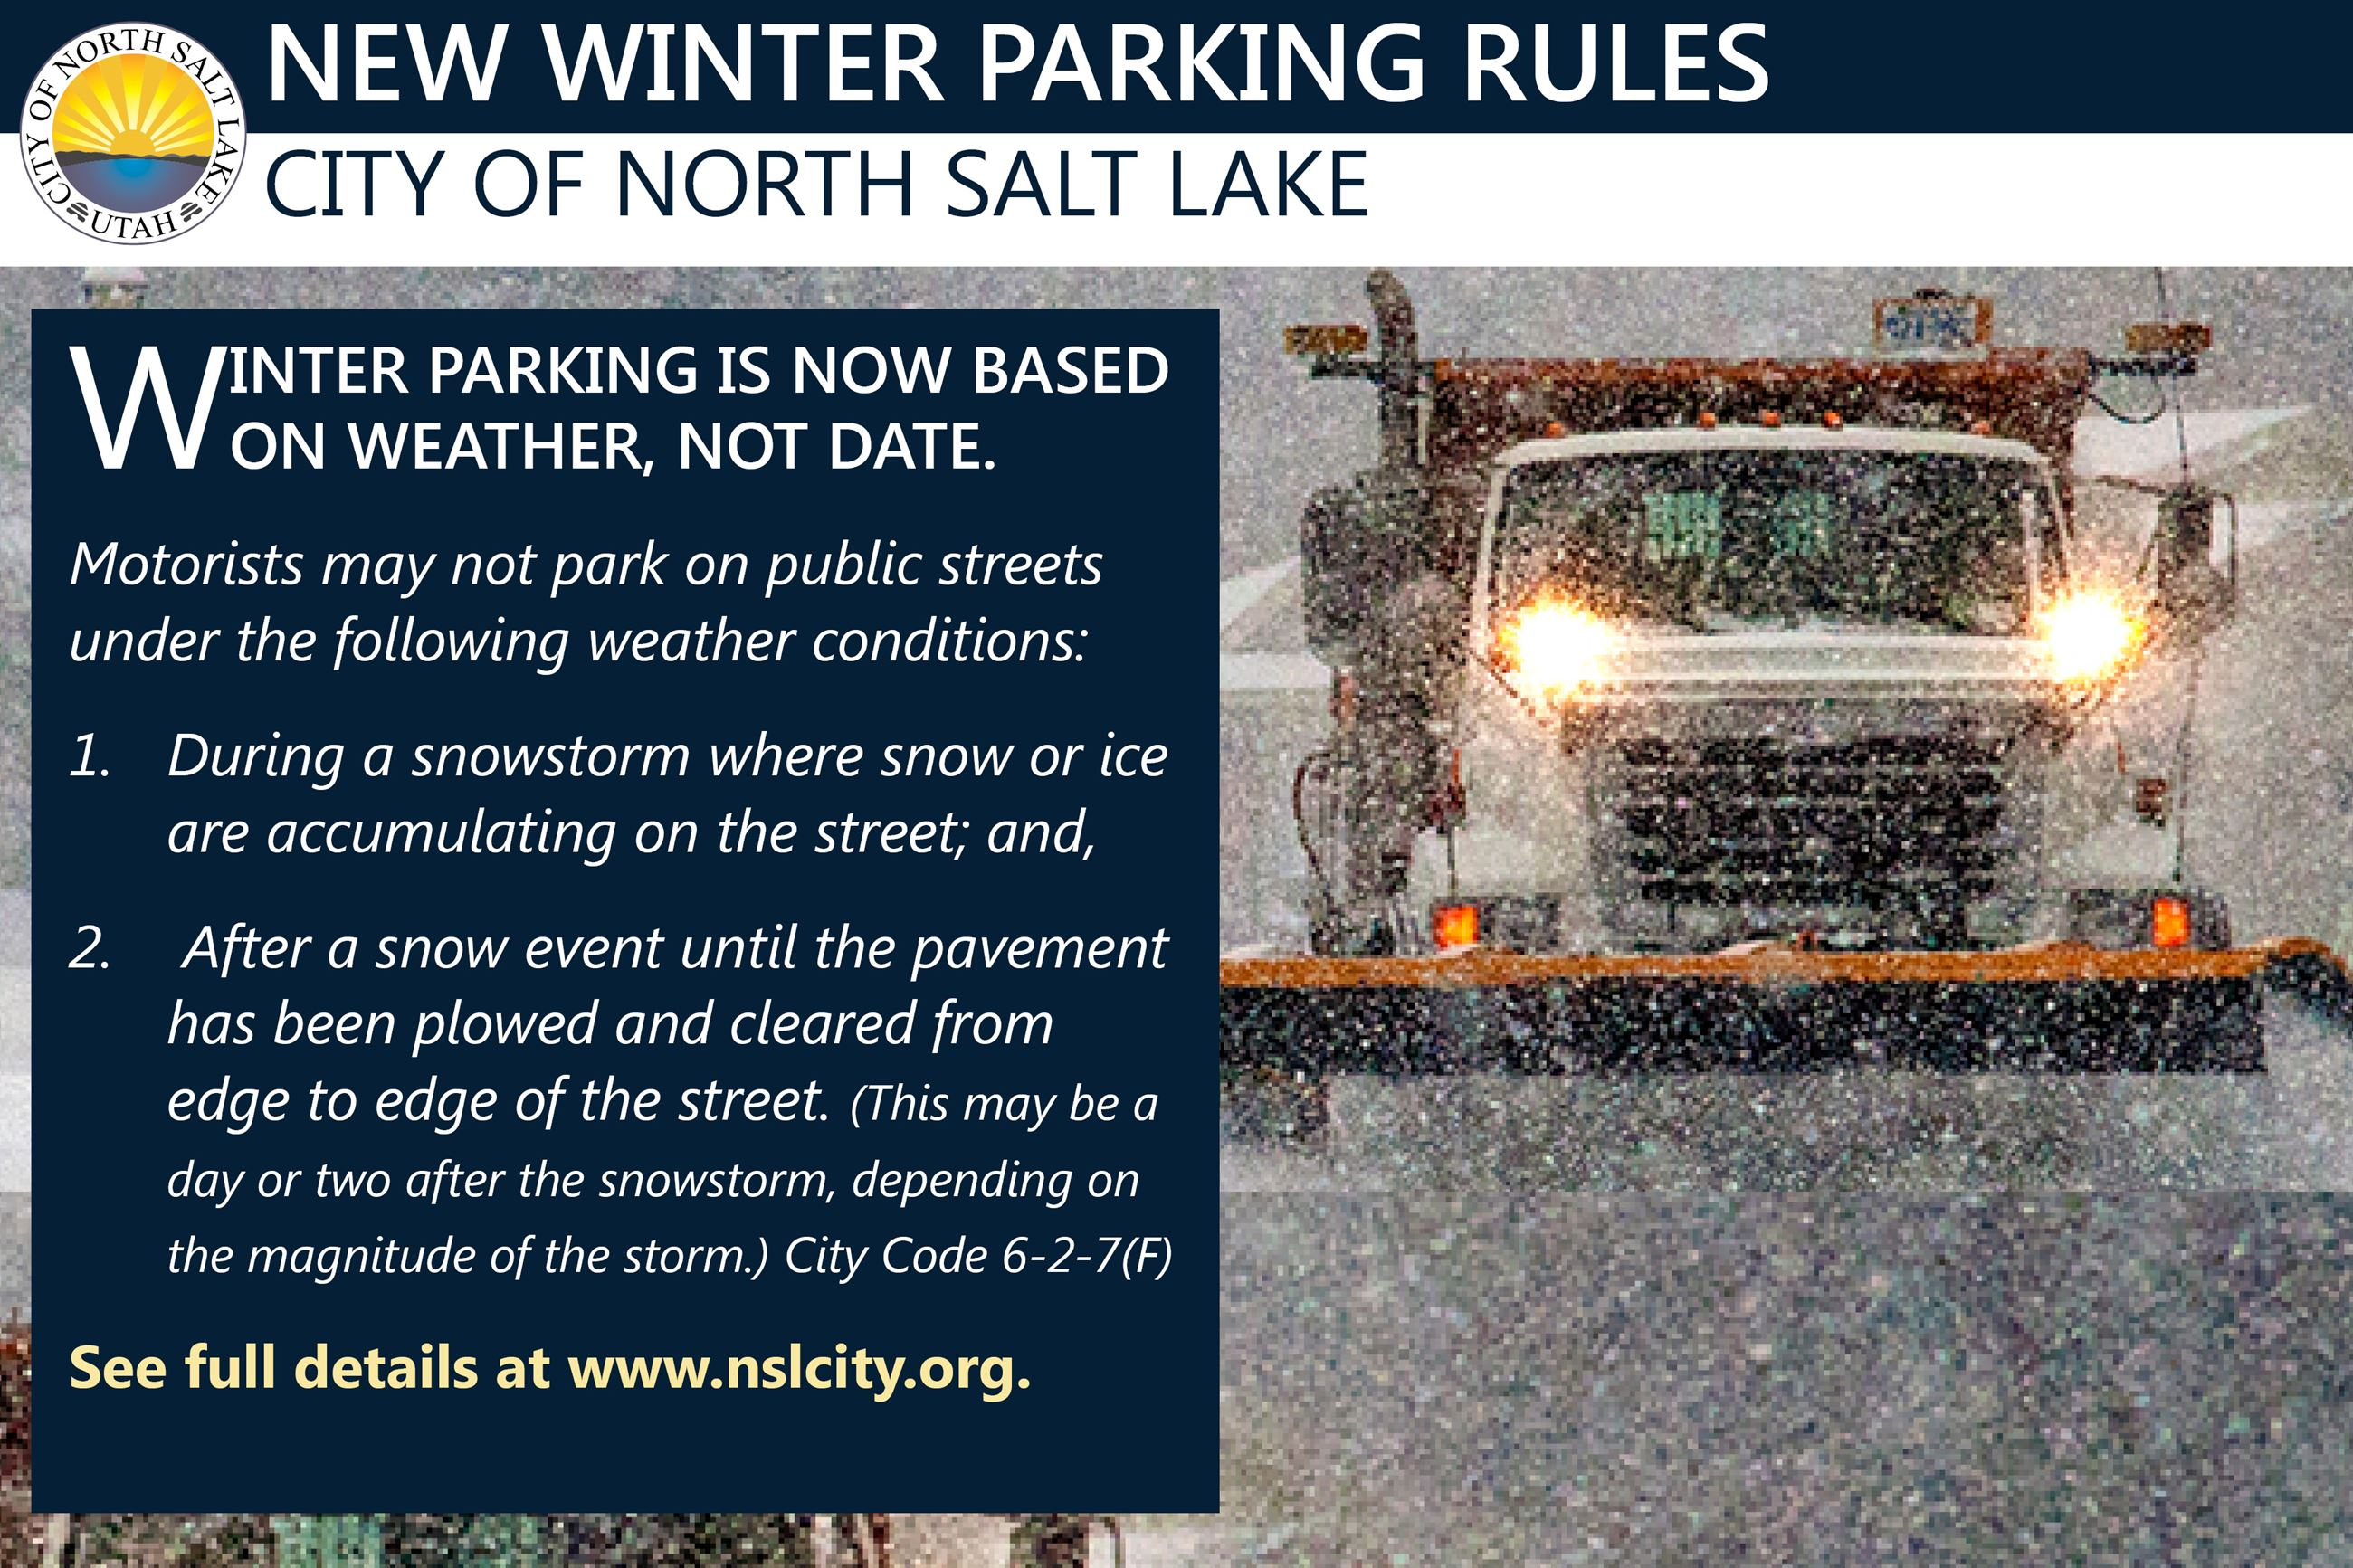 New winter parking rules 10.31.19